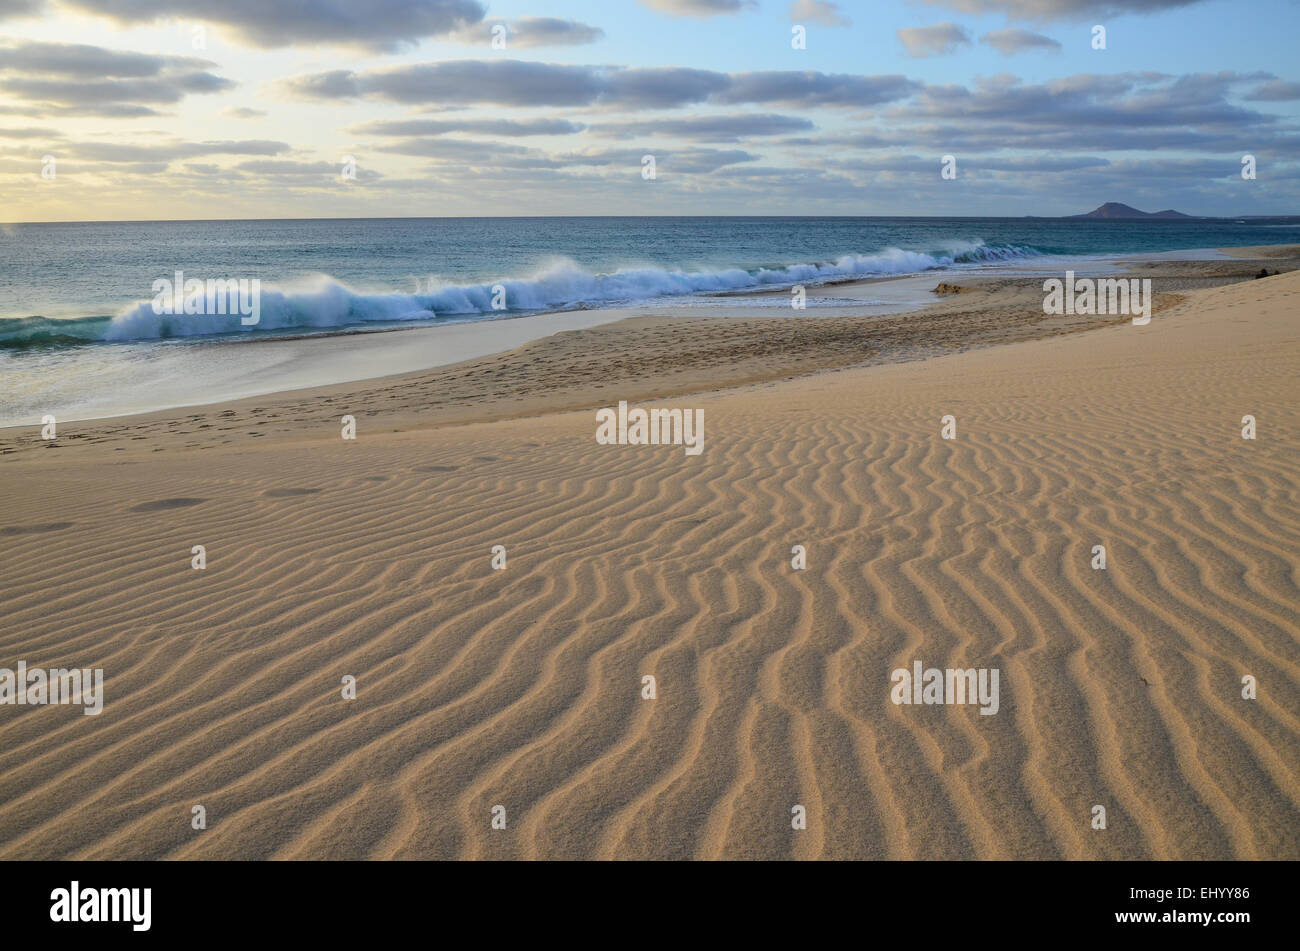 Cape Verde, Cape Verde Islands, sal, ponta preta, sand, dunes, sea, waves, Atlantic, beach, seashore, sand beach, Stock Photo